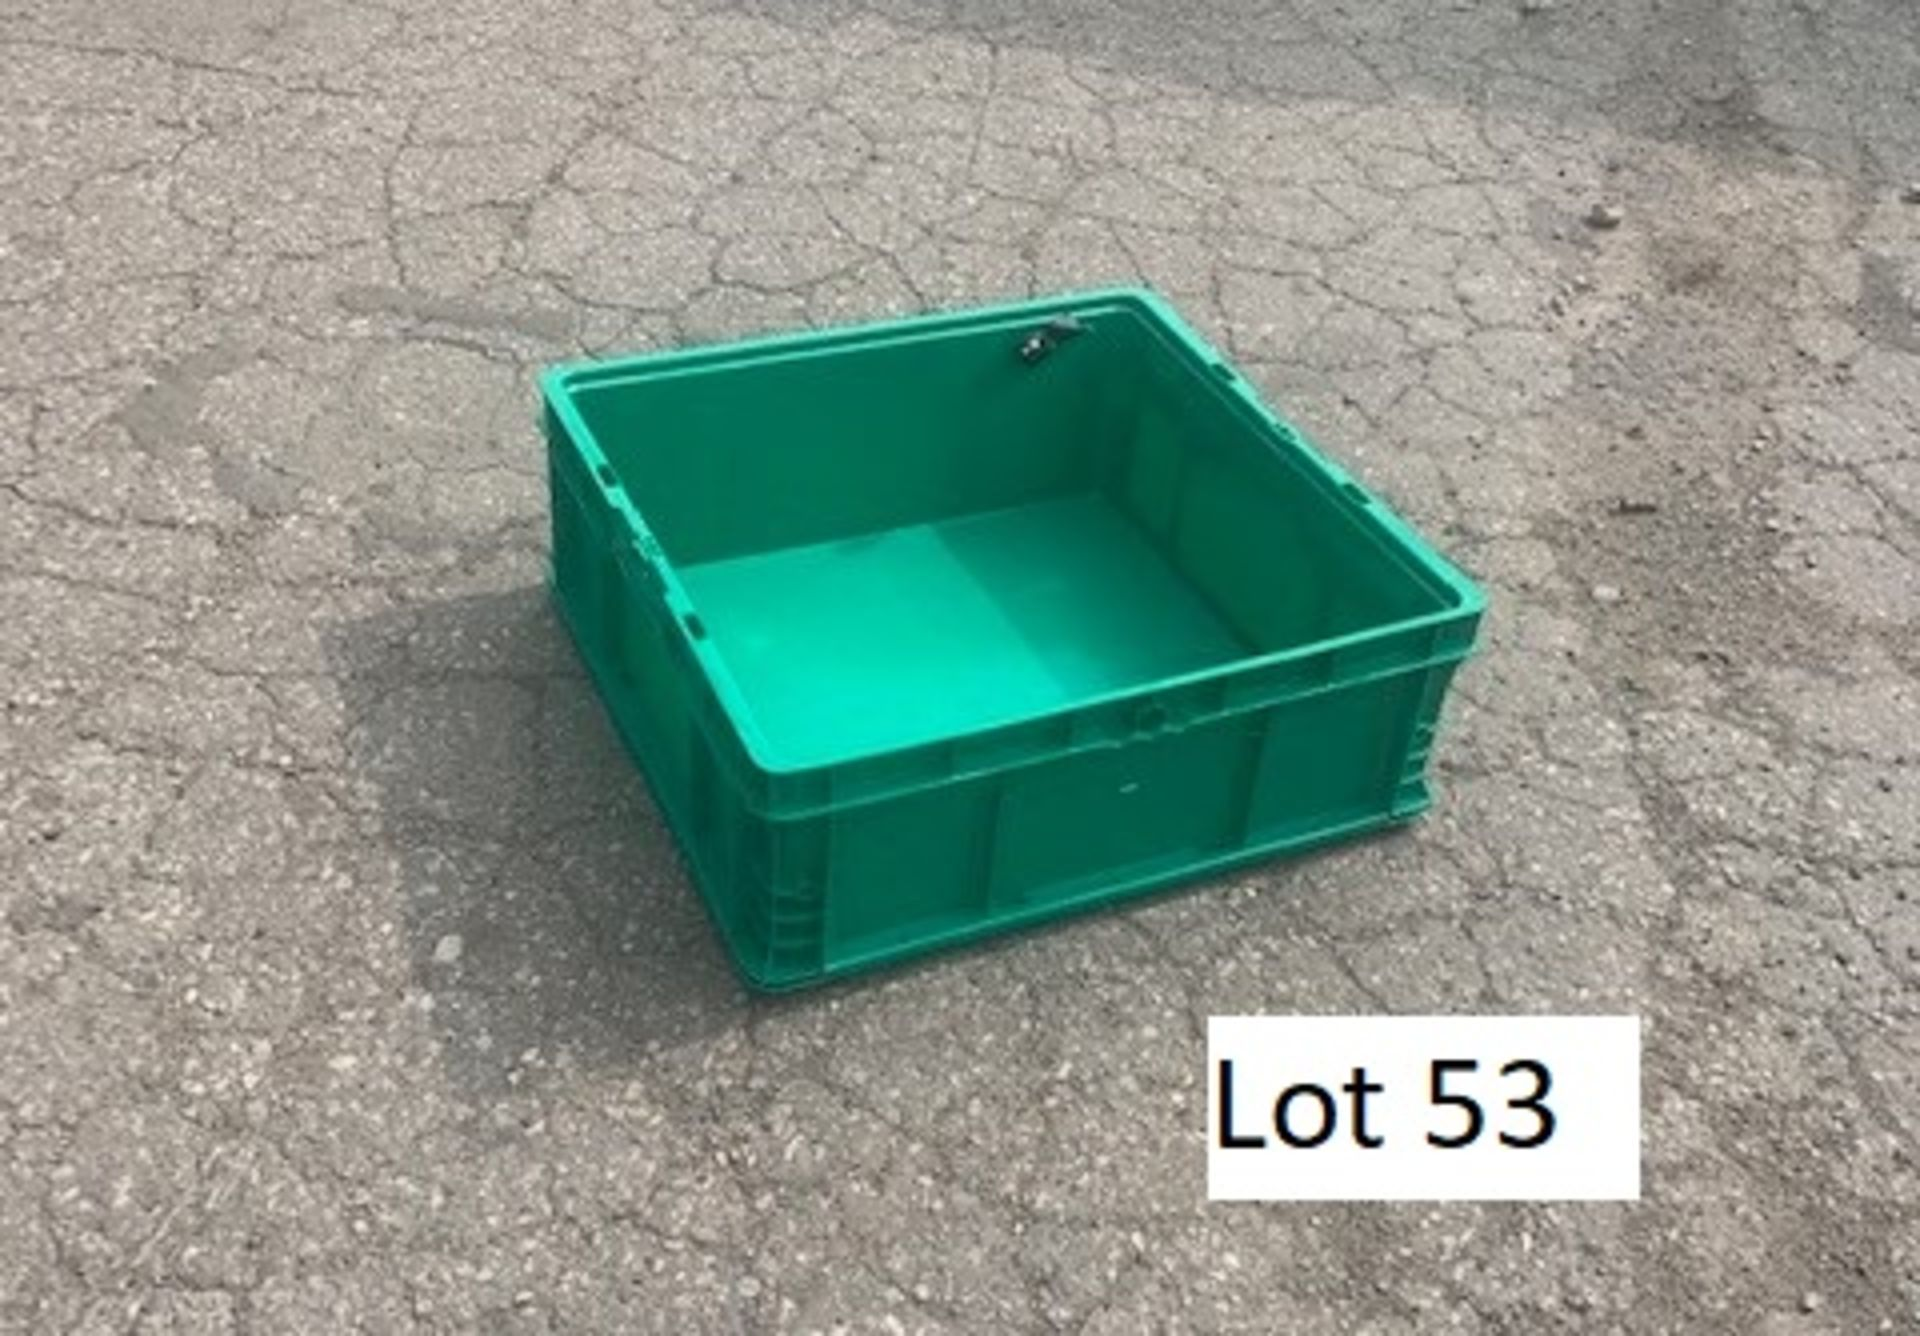 24X22X9 GREEN PACKAGING TOTES, LOT OF 50